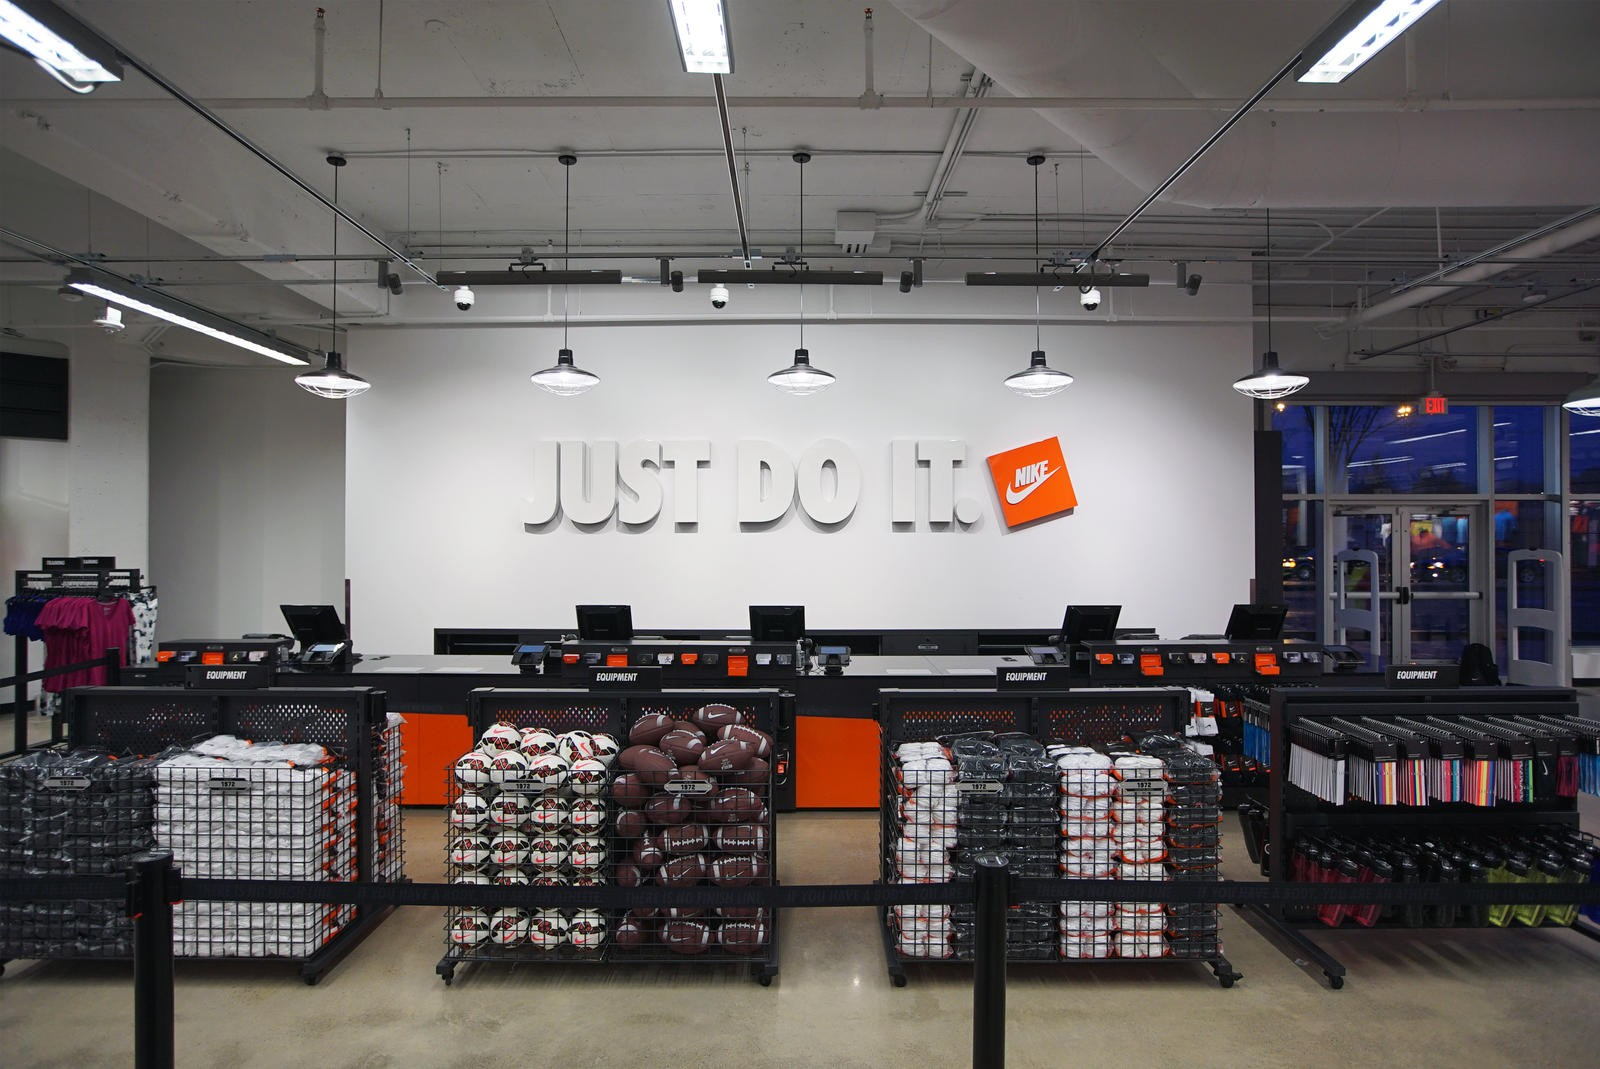 chaussures de sport 84ab4 97db0 Believe. Then see it.' Detroit Nike 'community store ...